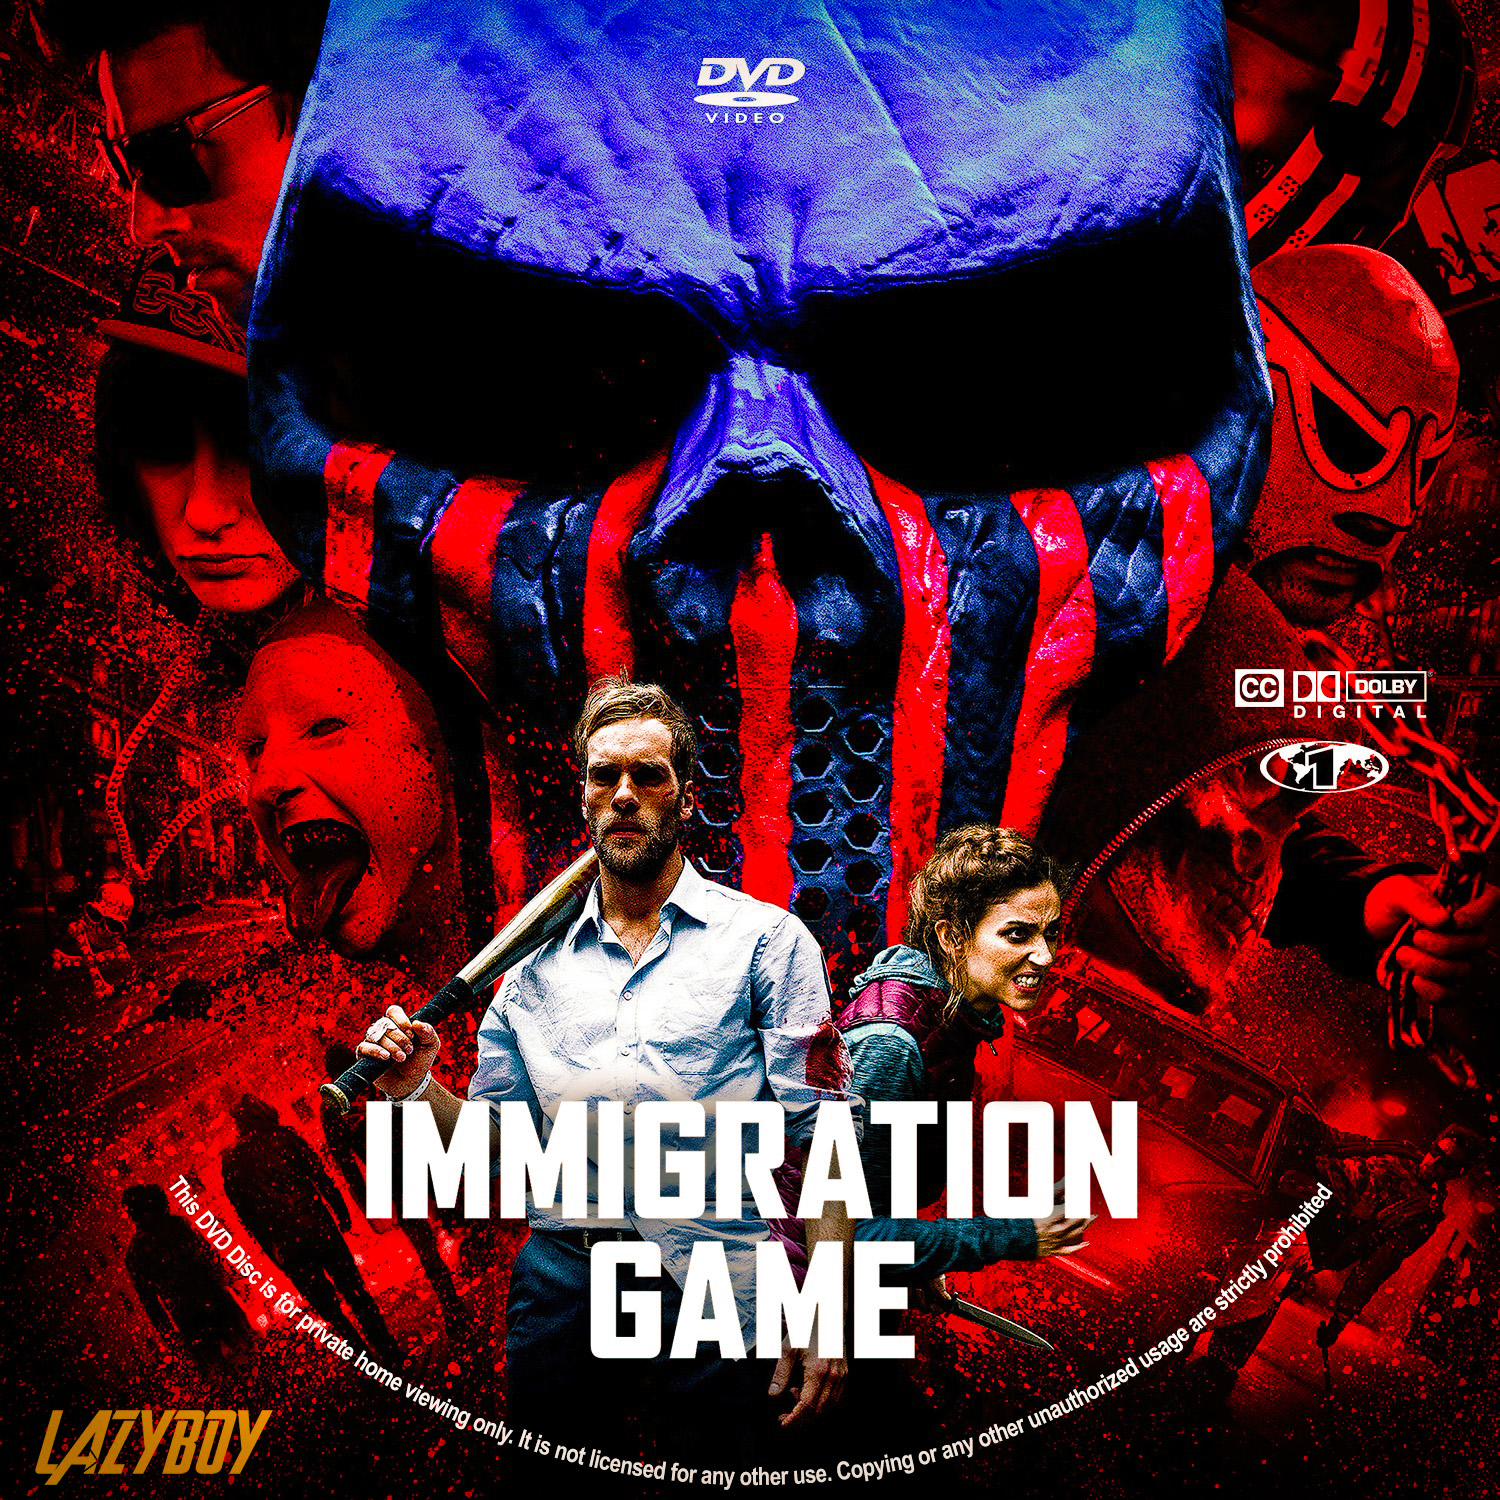 immigration game movie download